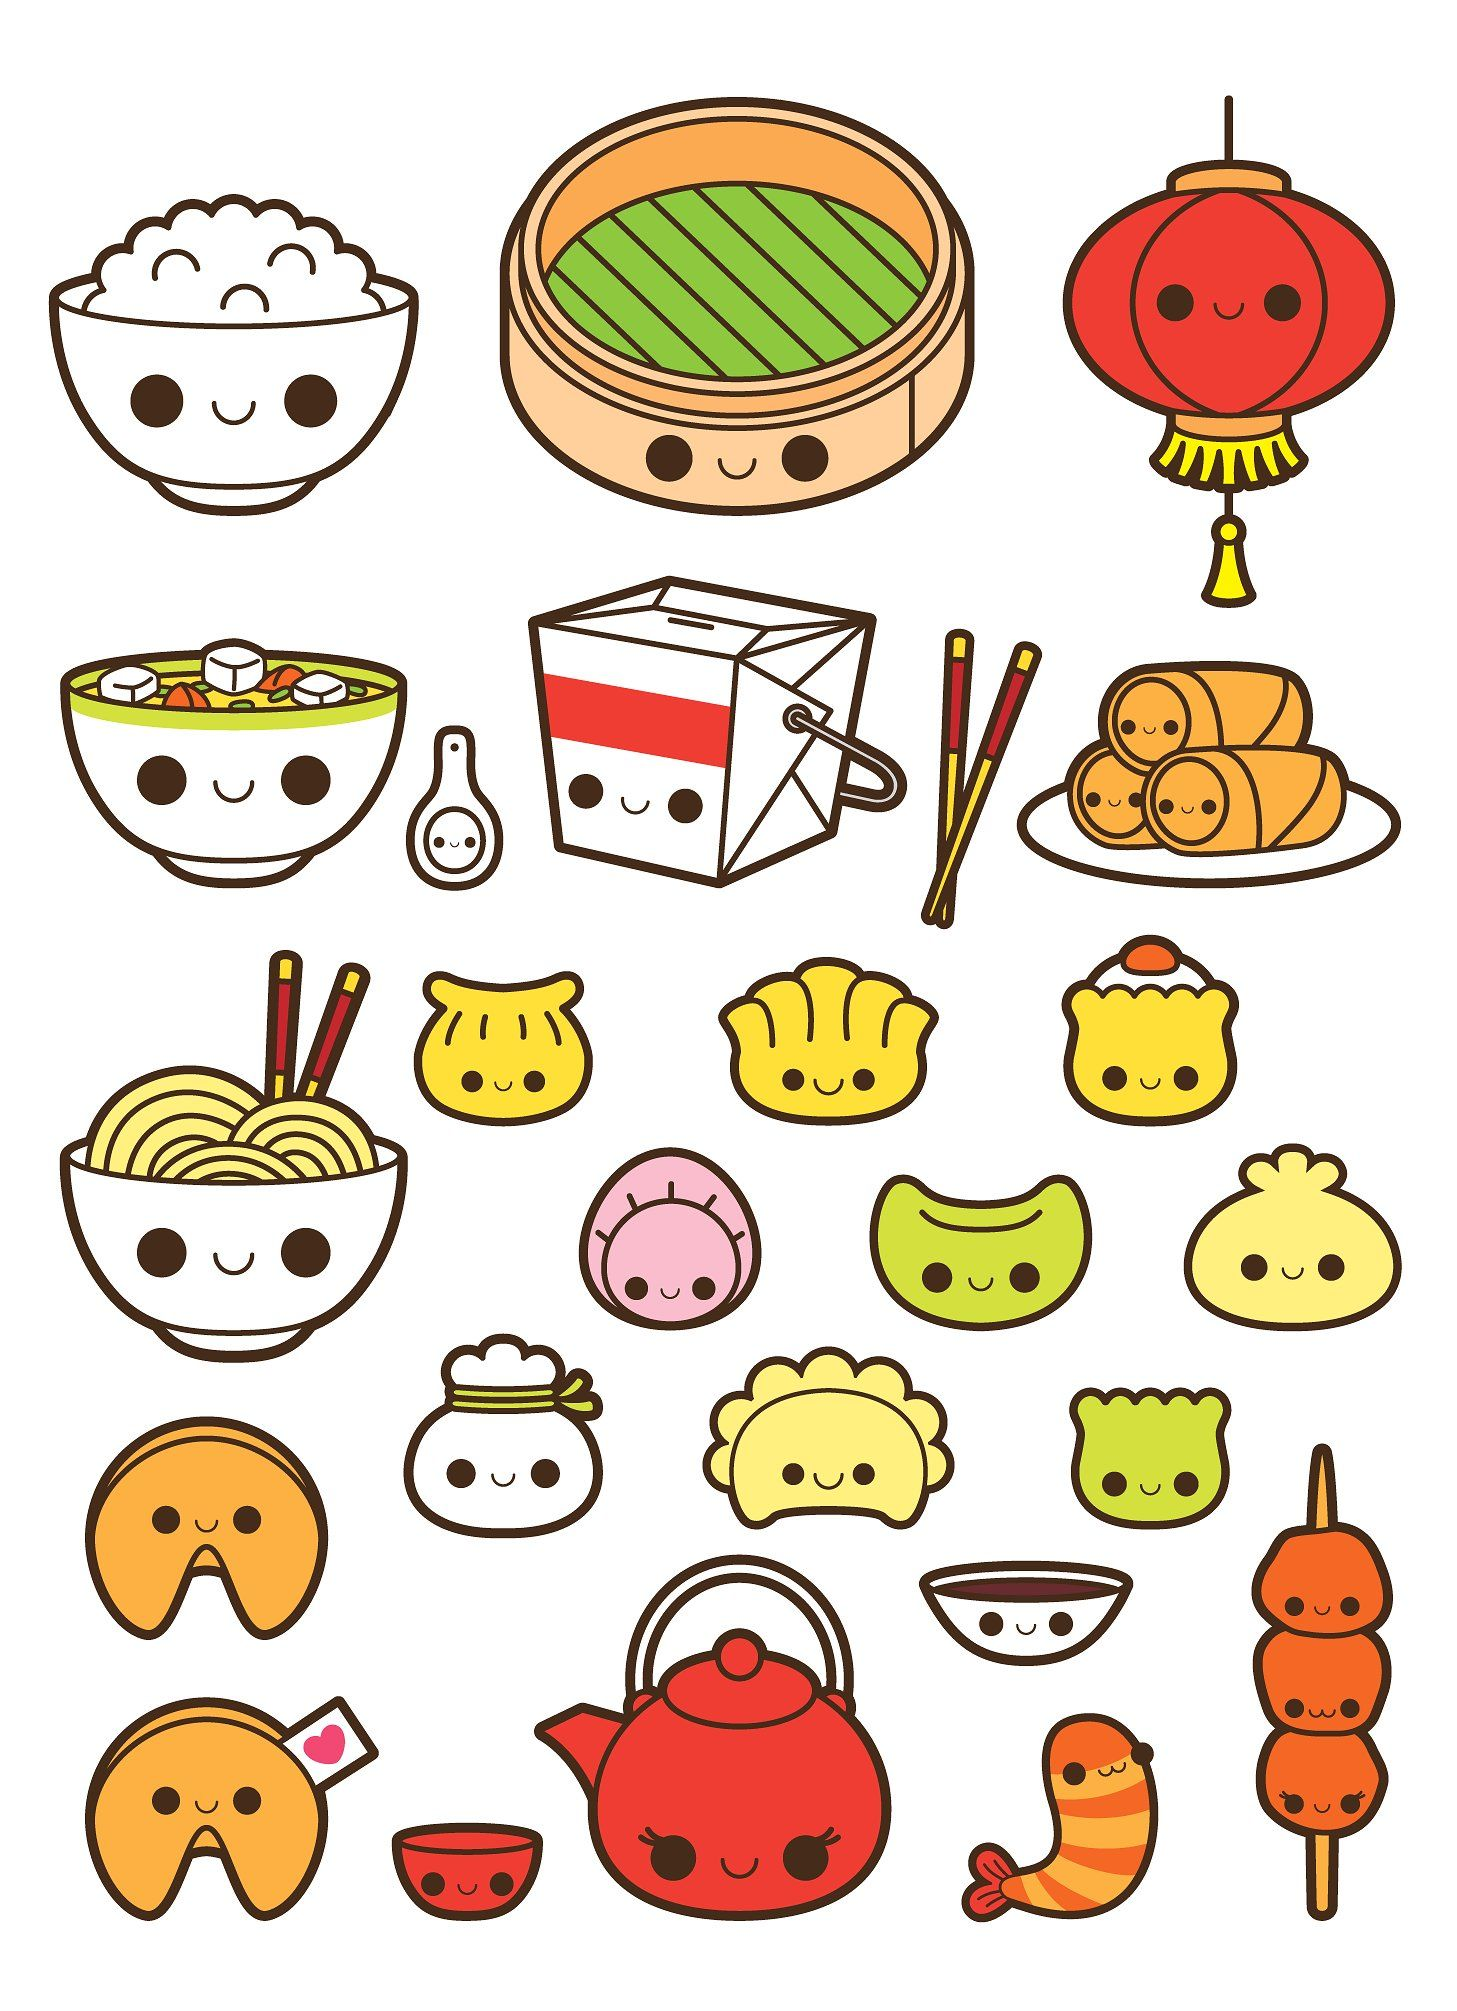 Kawaii Chinese Food With Images Cute Food Drawings Cute